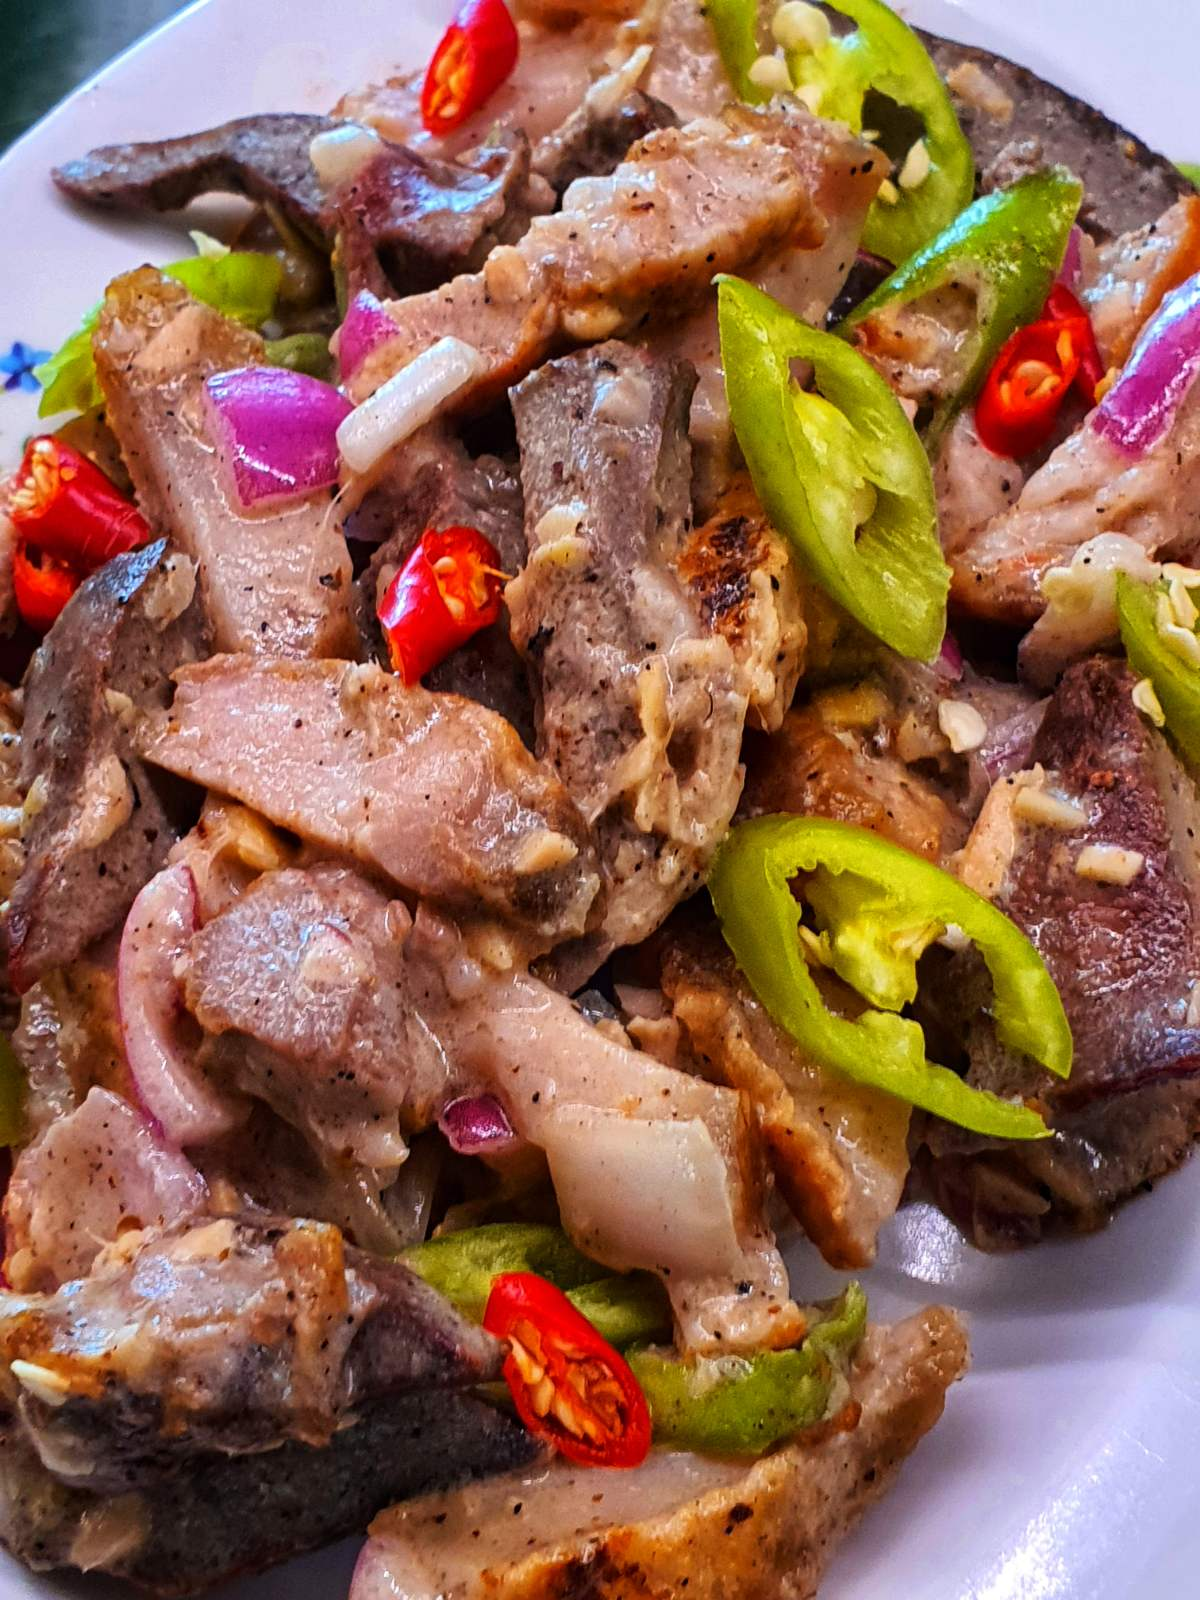 Pieces of pork meat mixed with read and green chilies and onions placed on a white serving plate.